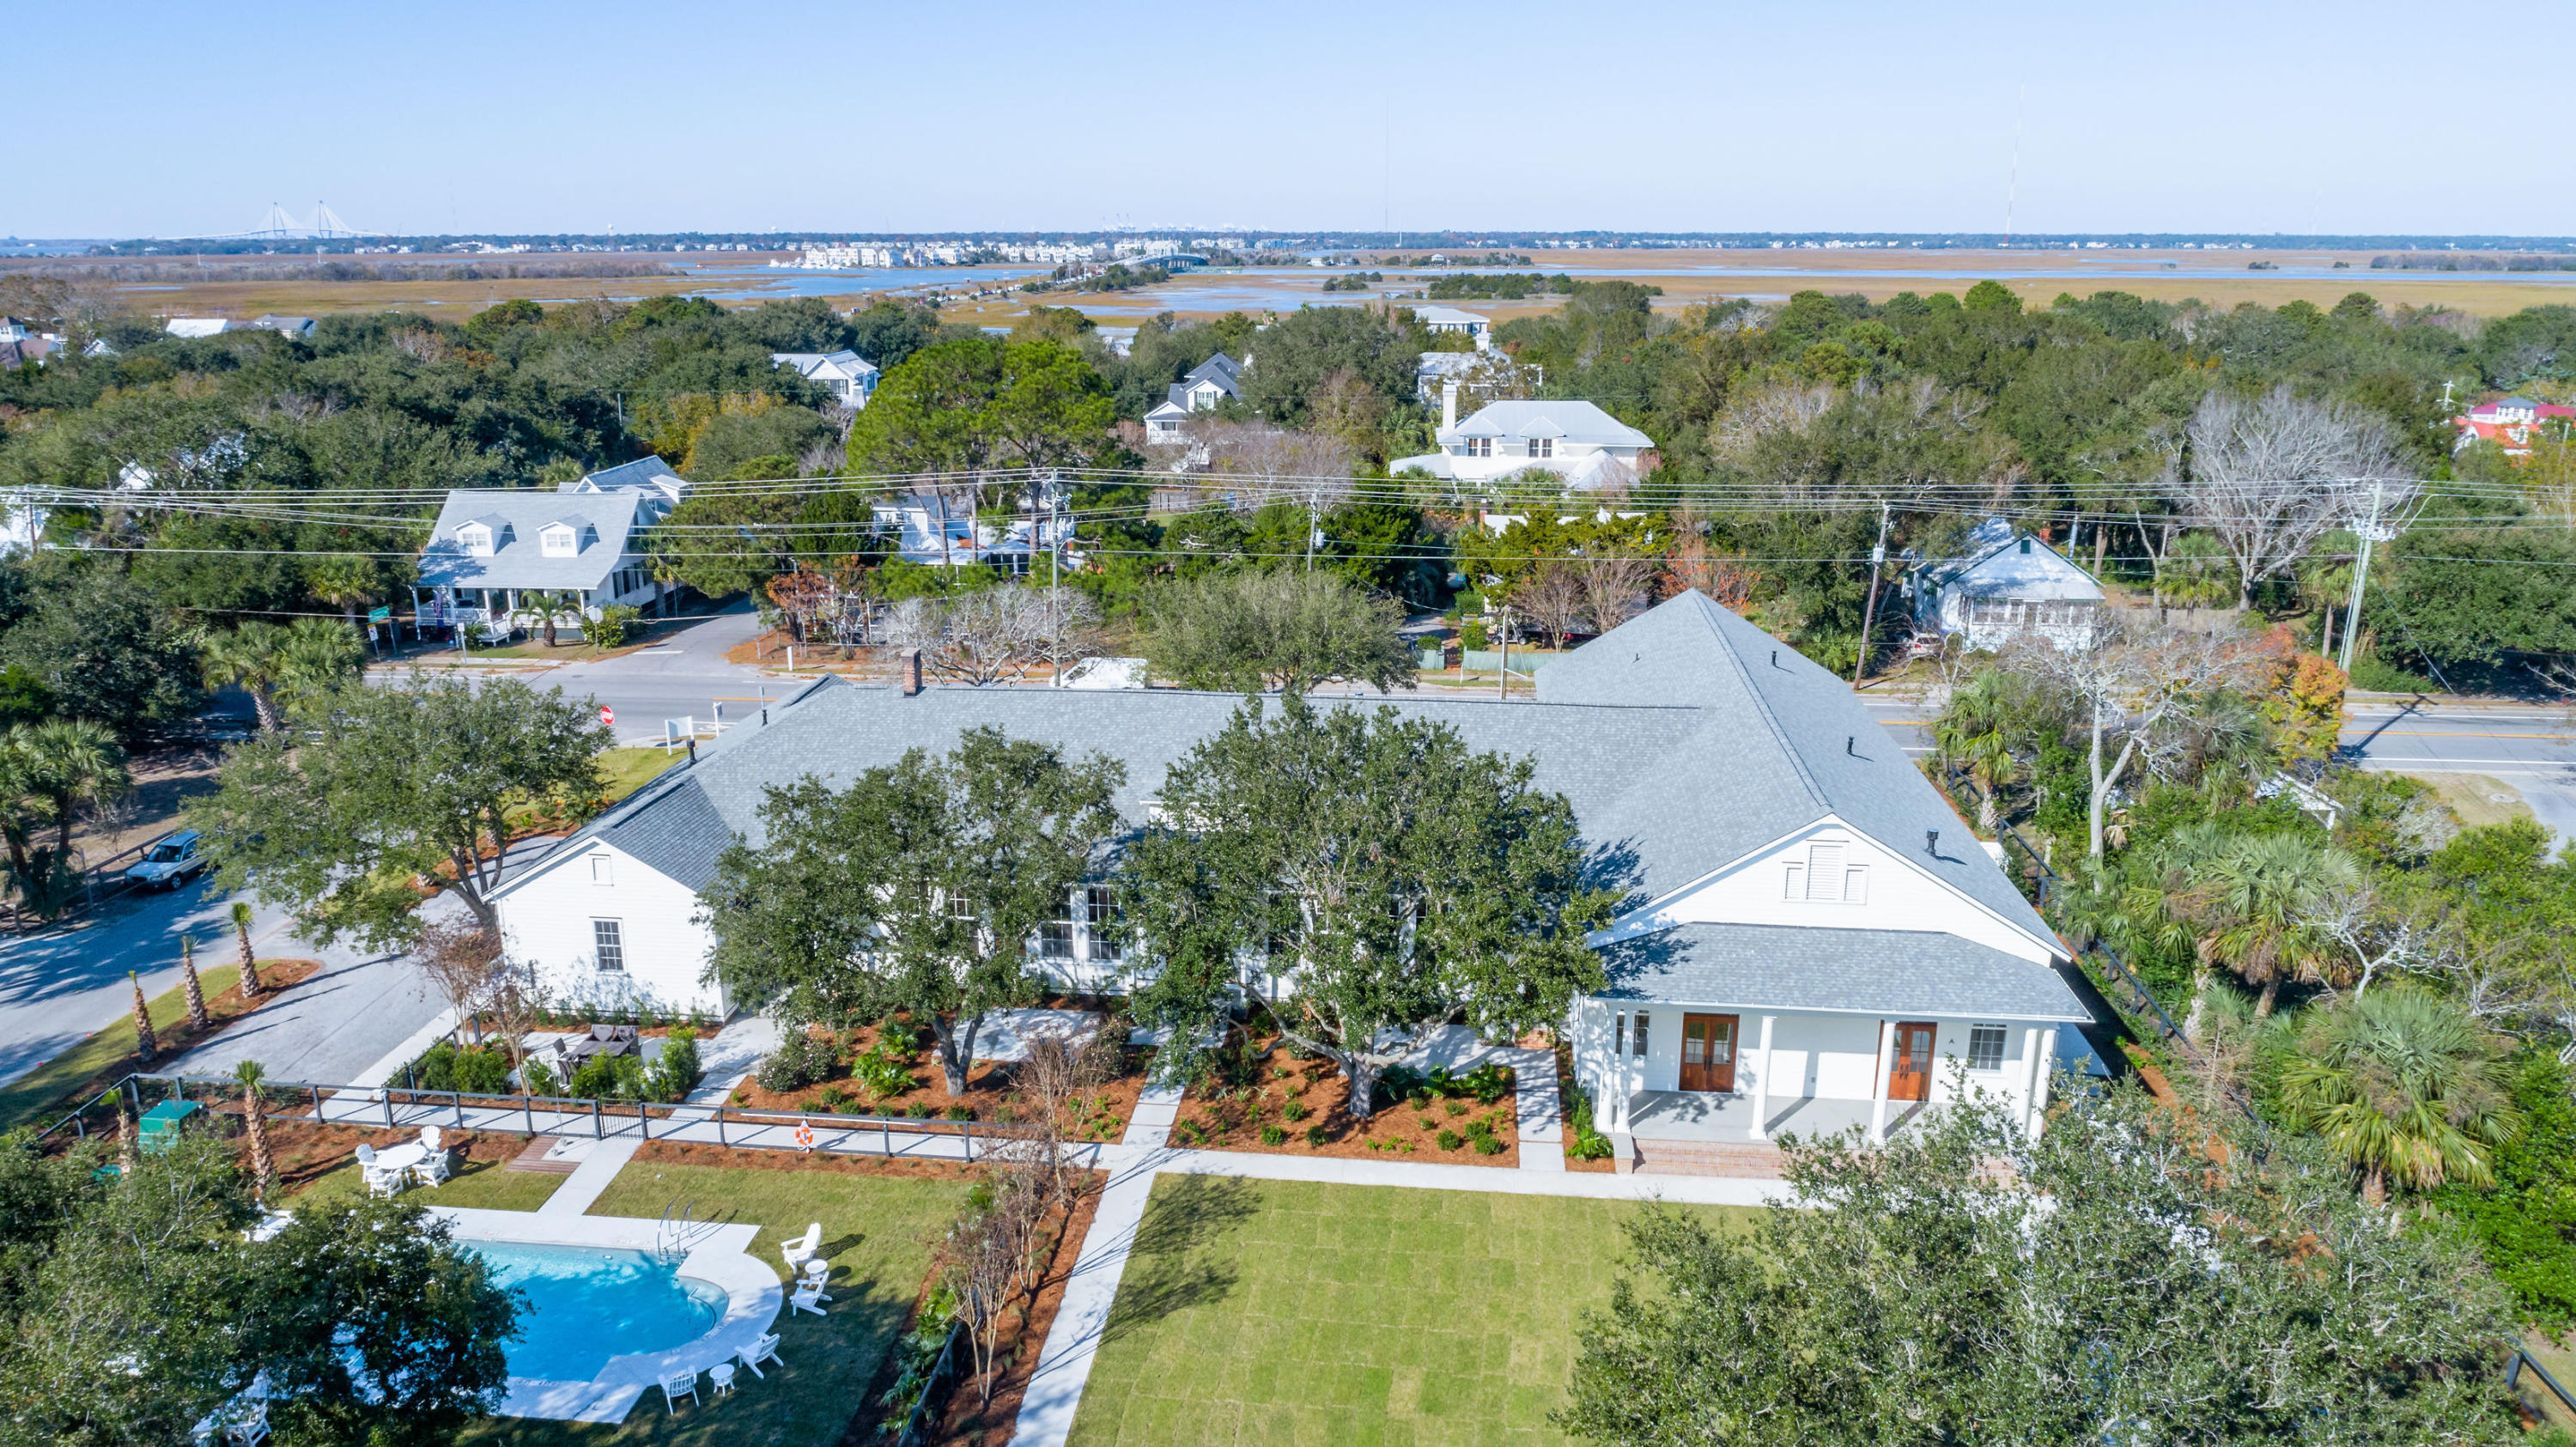 Sullivans House Homes For Sale - 2302 Middle, Sullivans Island, SC - 0